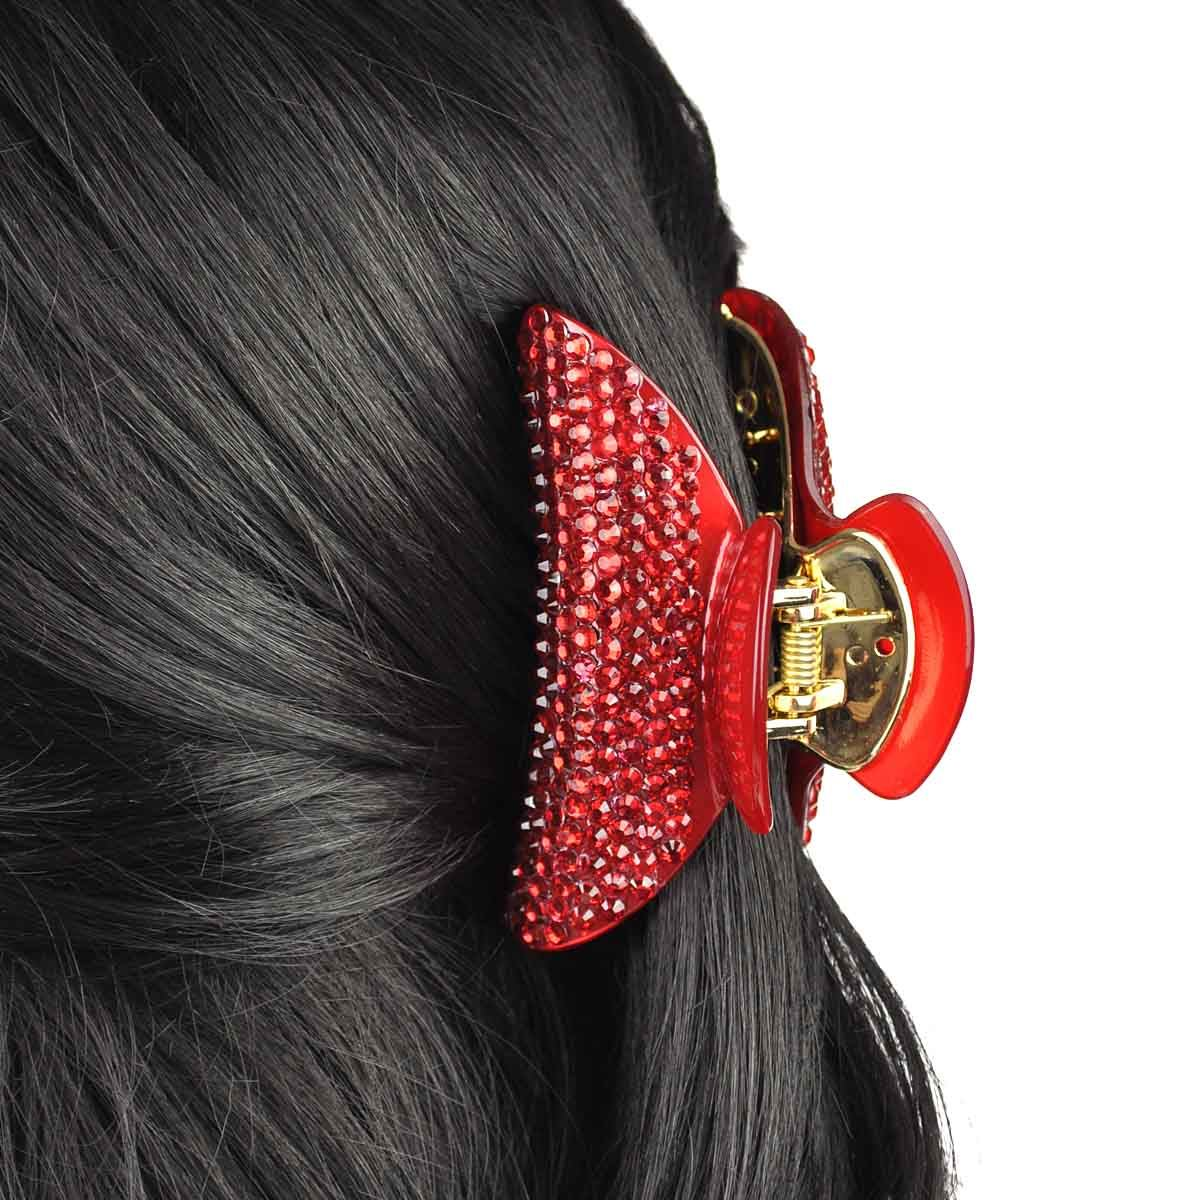 Clips & Grips. Whether you need them to keep your hairstyle in place, or you want to add a pop of cute colour to your look, our range of clips and grips will style your hair with simplicity.